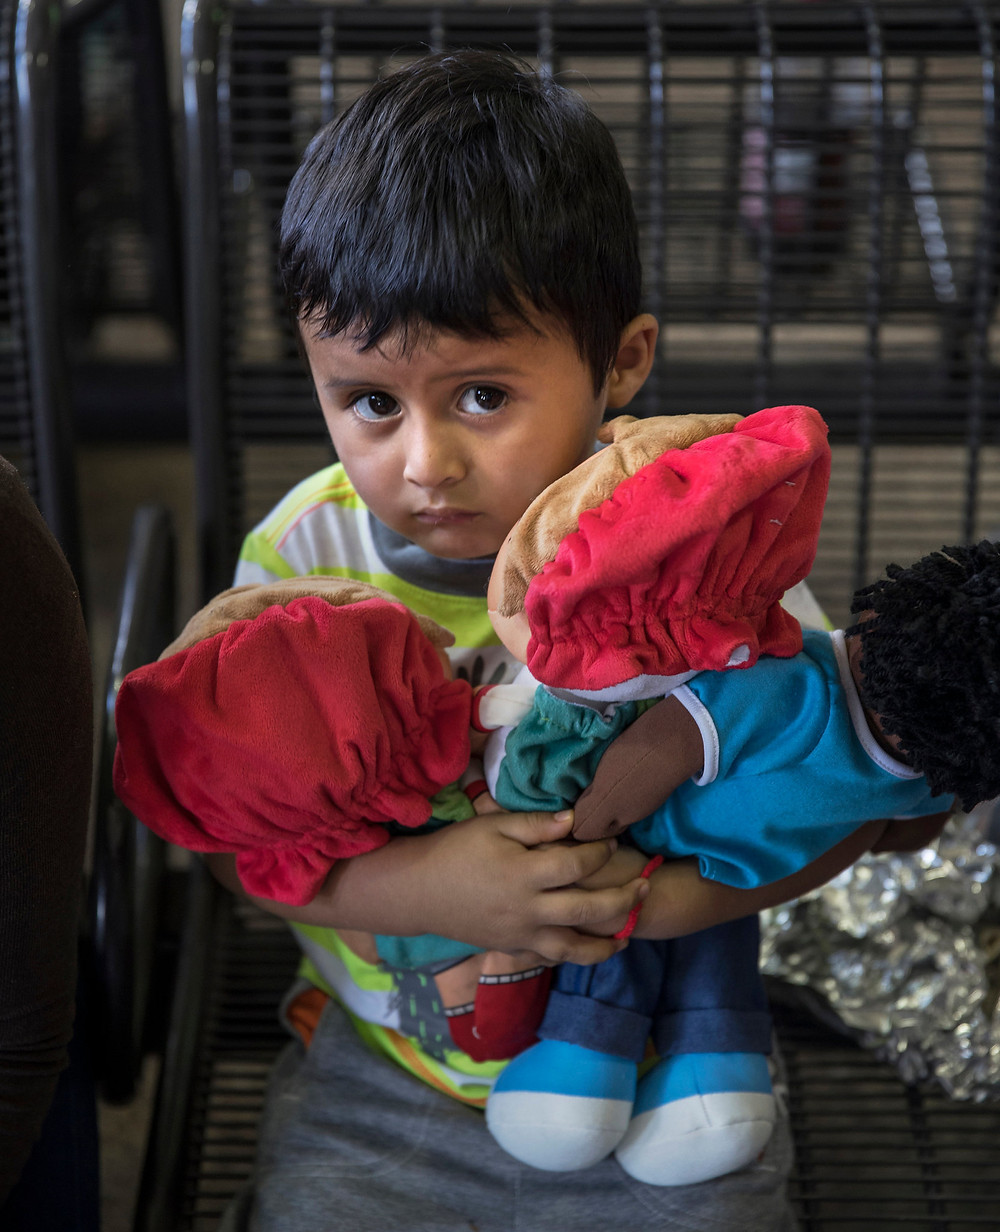 US immigration detention centres and the mistreatment of migrant children